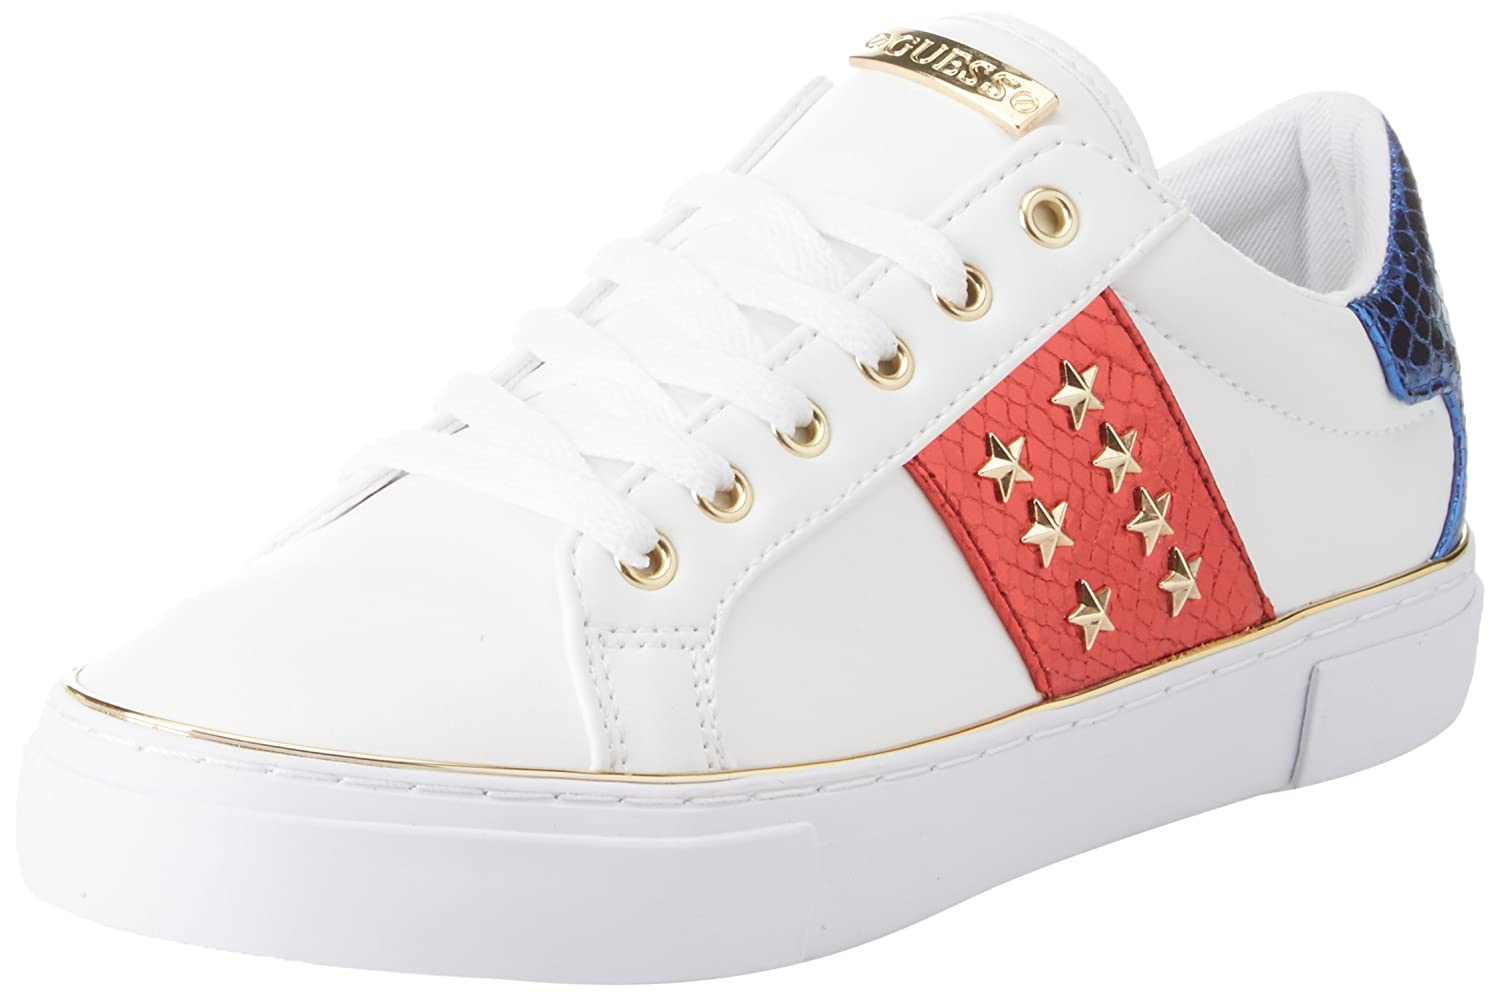 TALLA 37 EU. Guess Gamer/Active Lady/Leather Like, Zapatillas de Gimnasia para Mujer